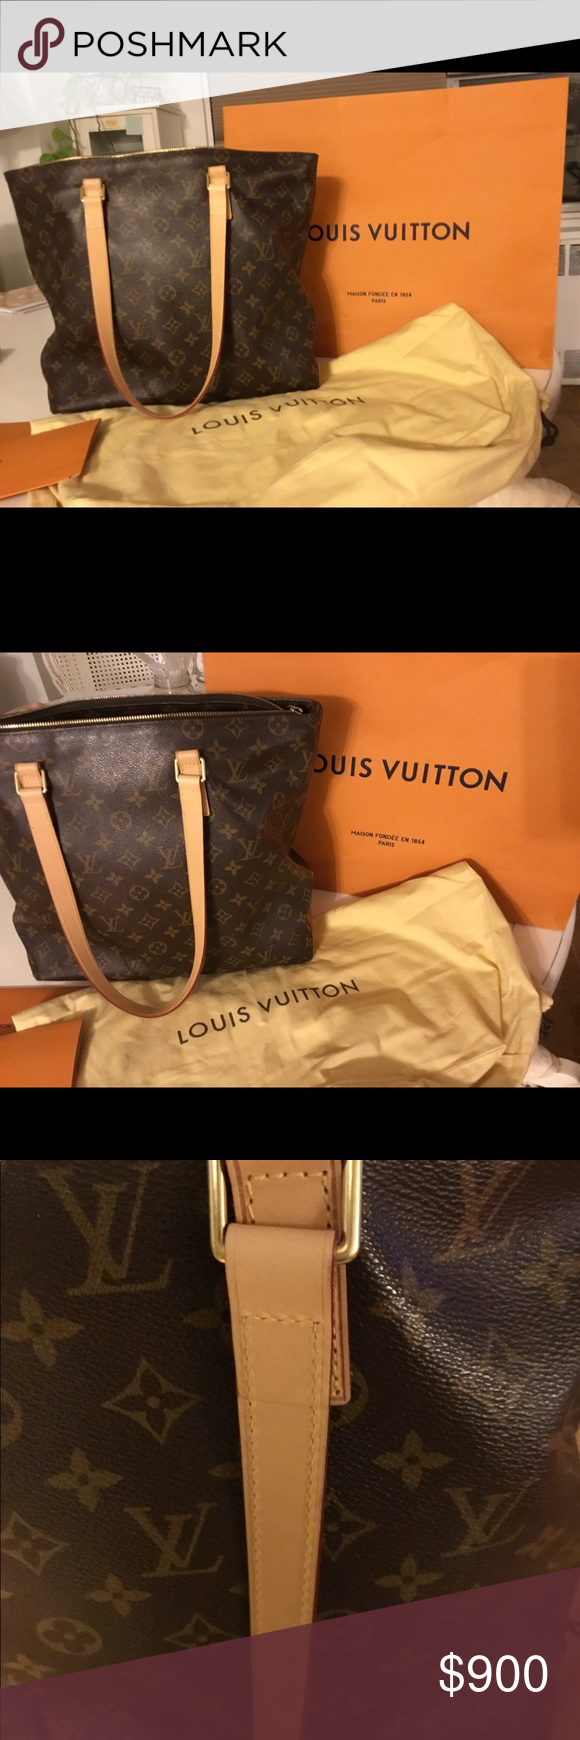 bb37a47afdcb Louis Vuitton large cabas piano tote This style is discontinued! Bottom  leather shows wear but